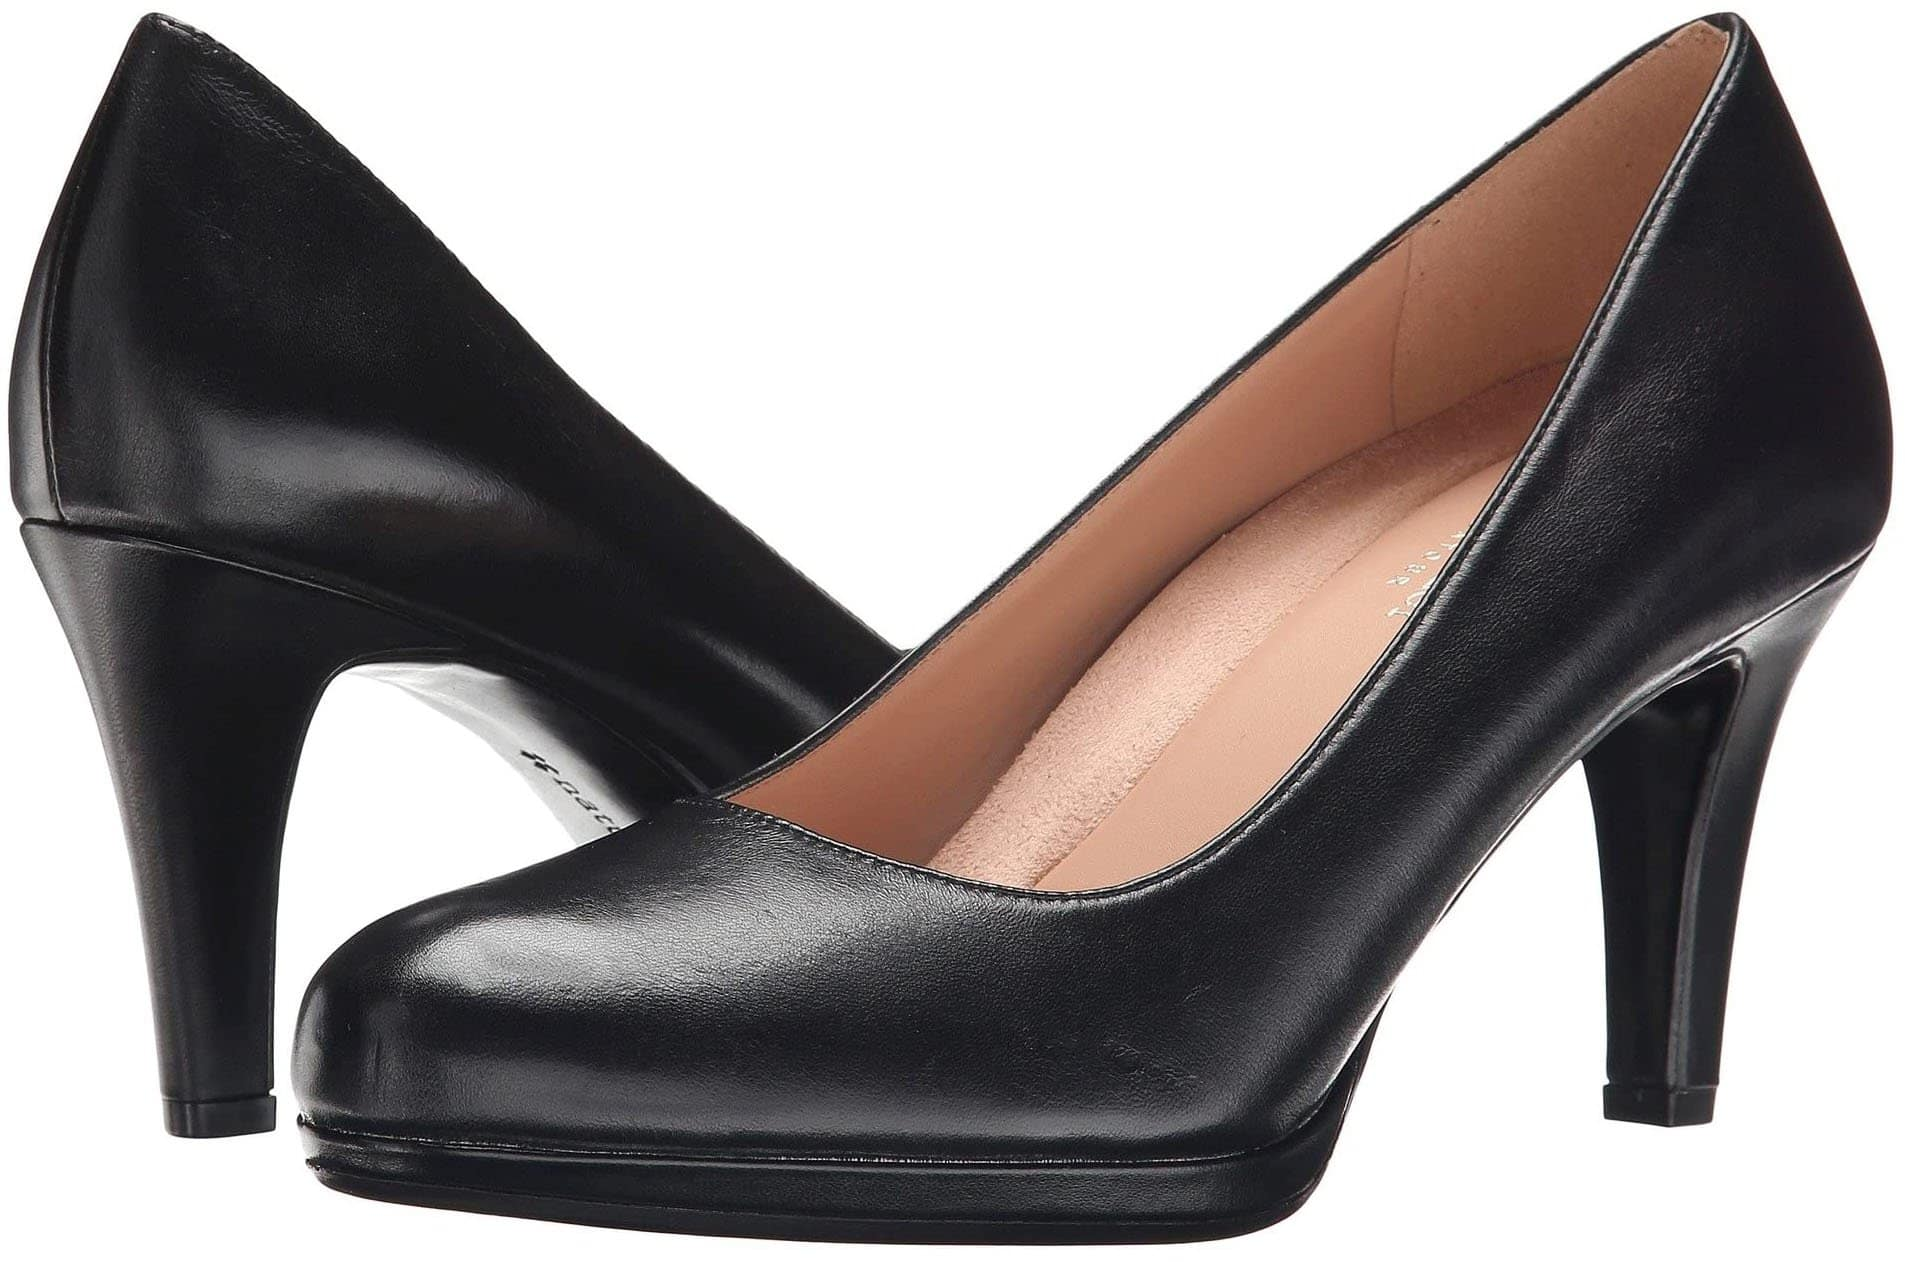 Naturalizer's Michelle pumps offer a simple yet sleek silhouette for a timeless and stylish look